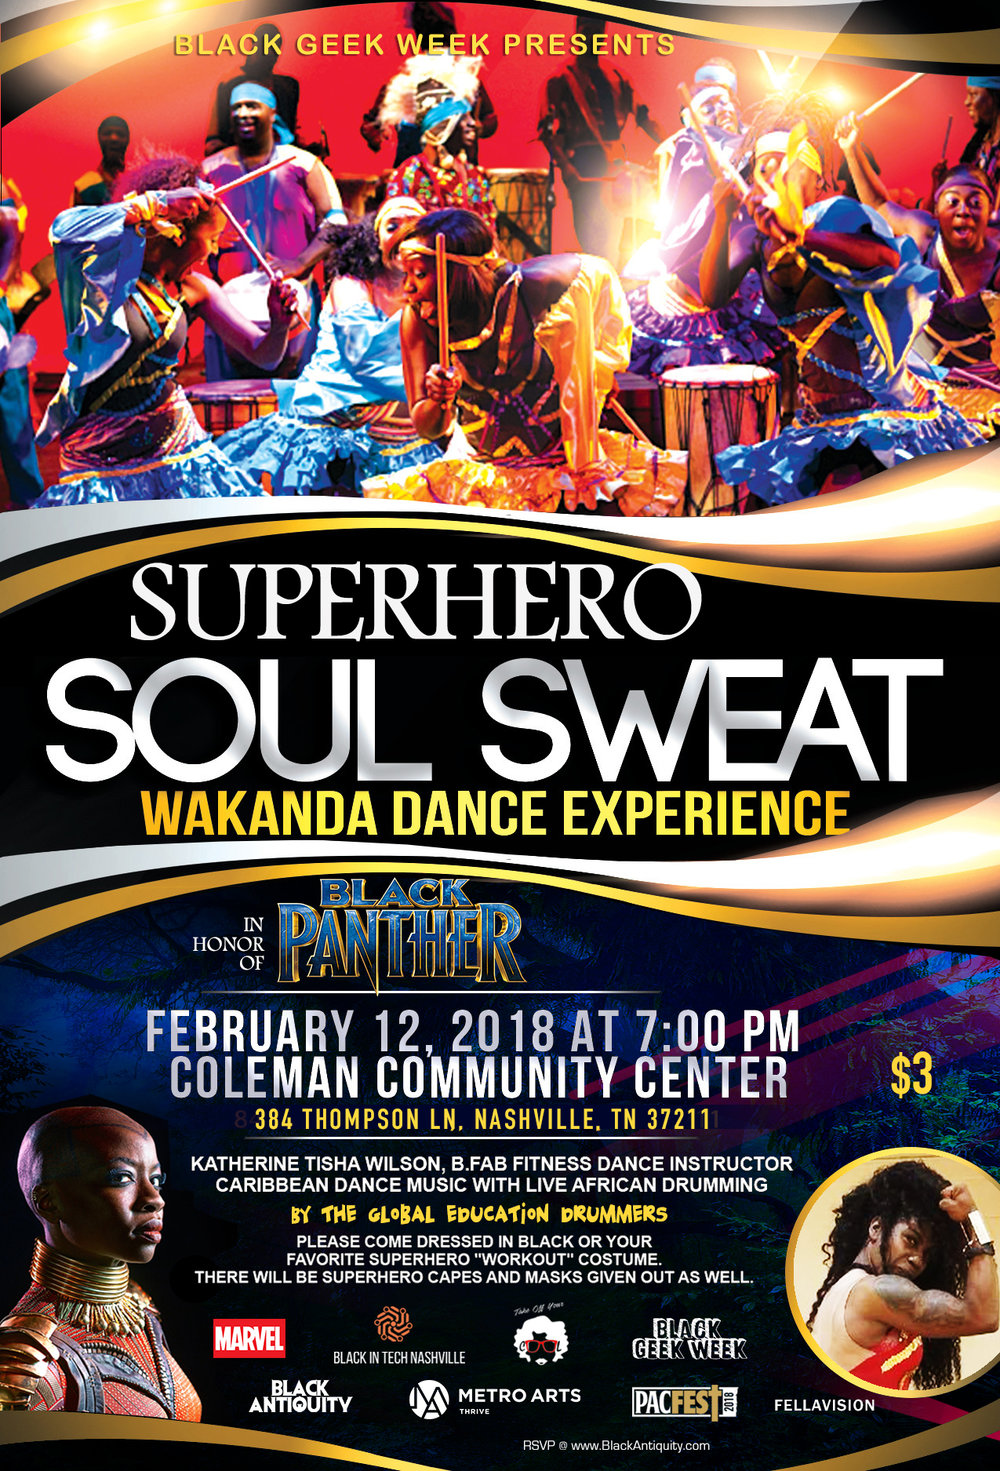 Superhero Soul Sweat - Wakanda Dance Experience hosted by Katherine Tisha Wilson, B.Fab Fitness Dance Instructor. Caribbean Dance Music With Live African Drumming.